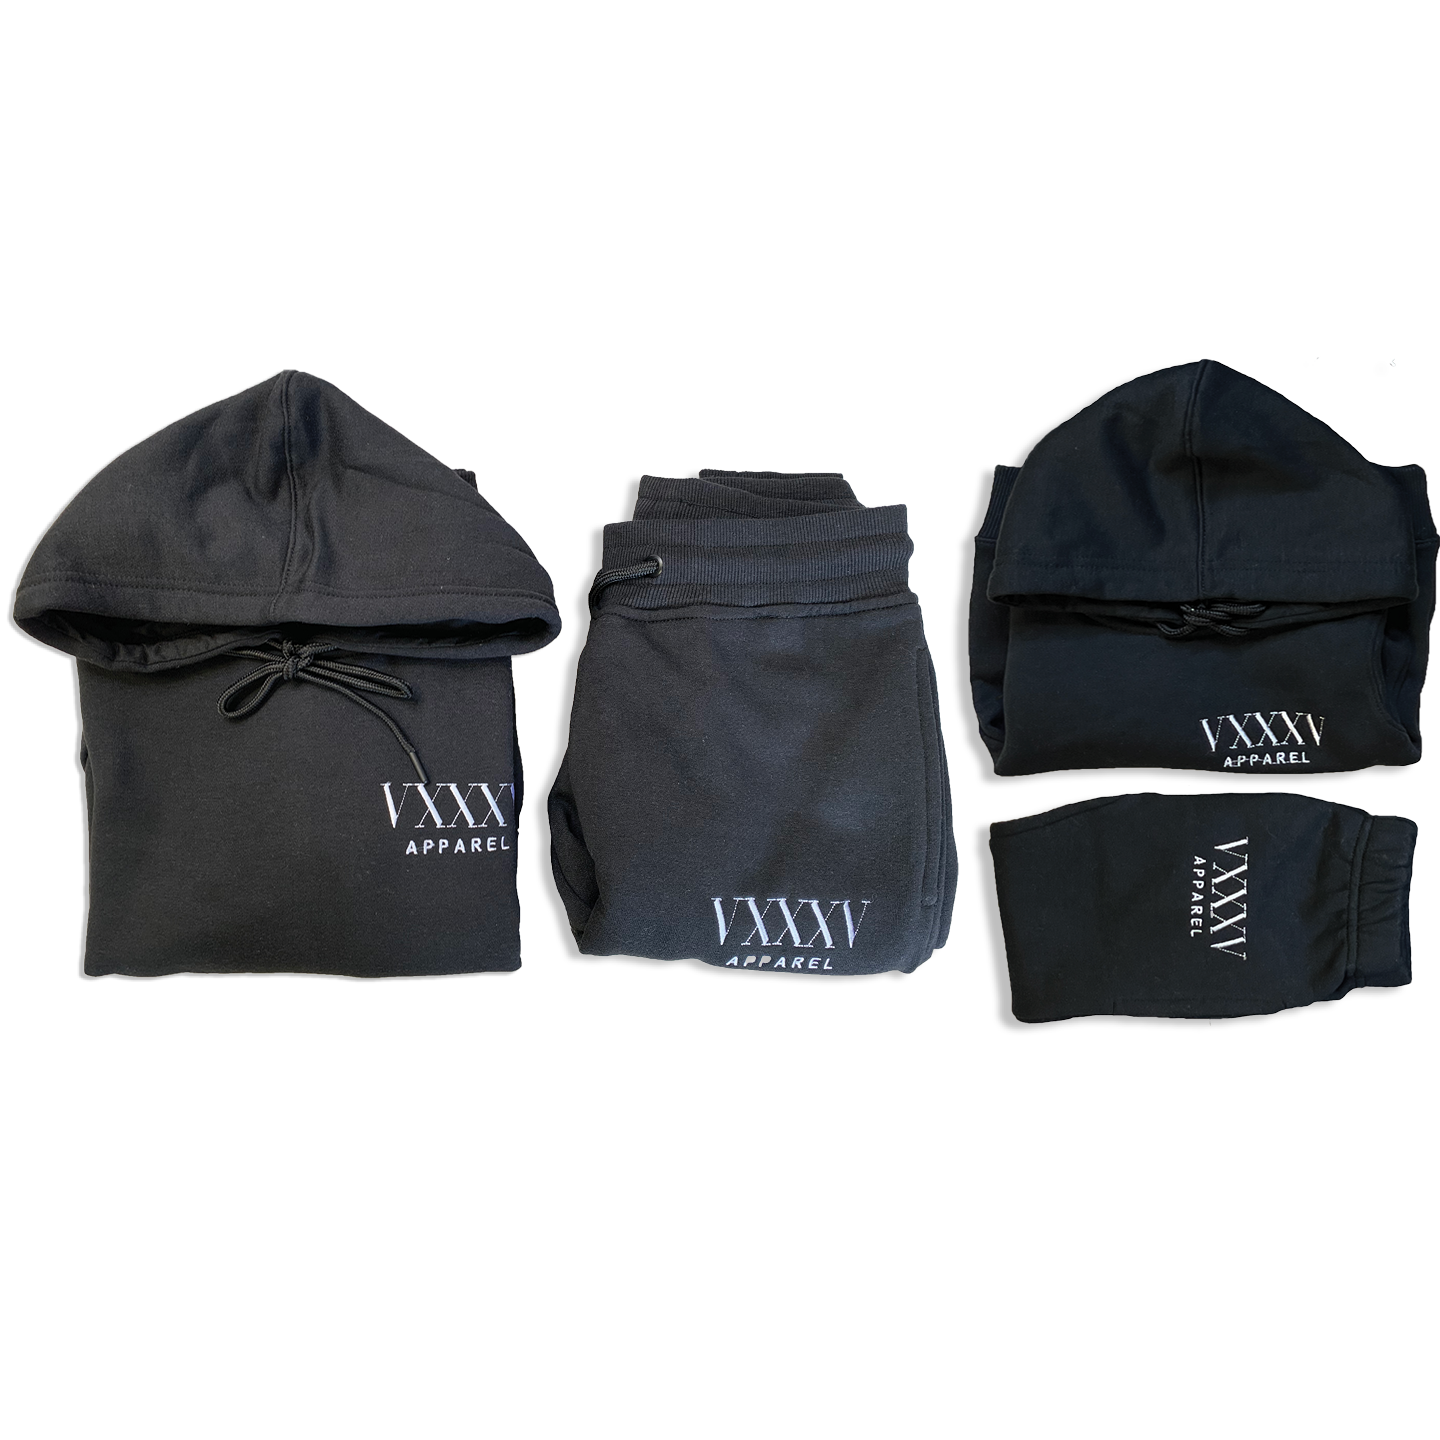 Casual & Mini Casual Sweatsuit Bundle